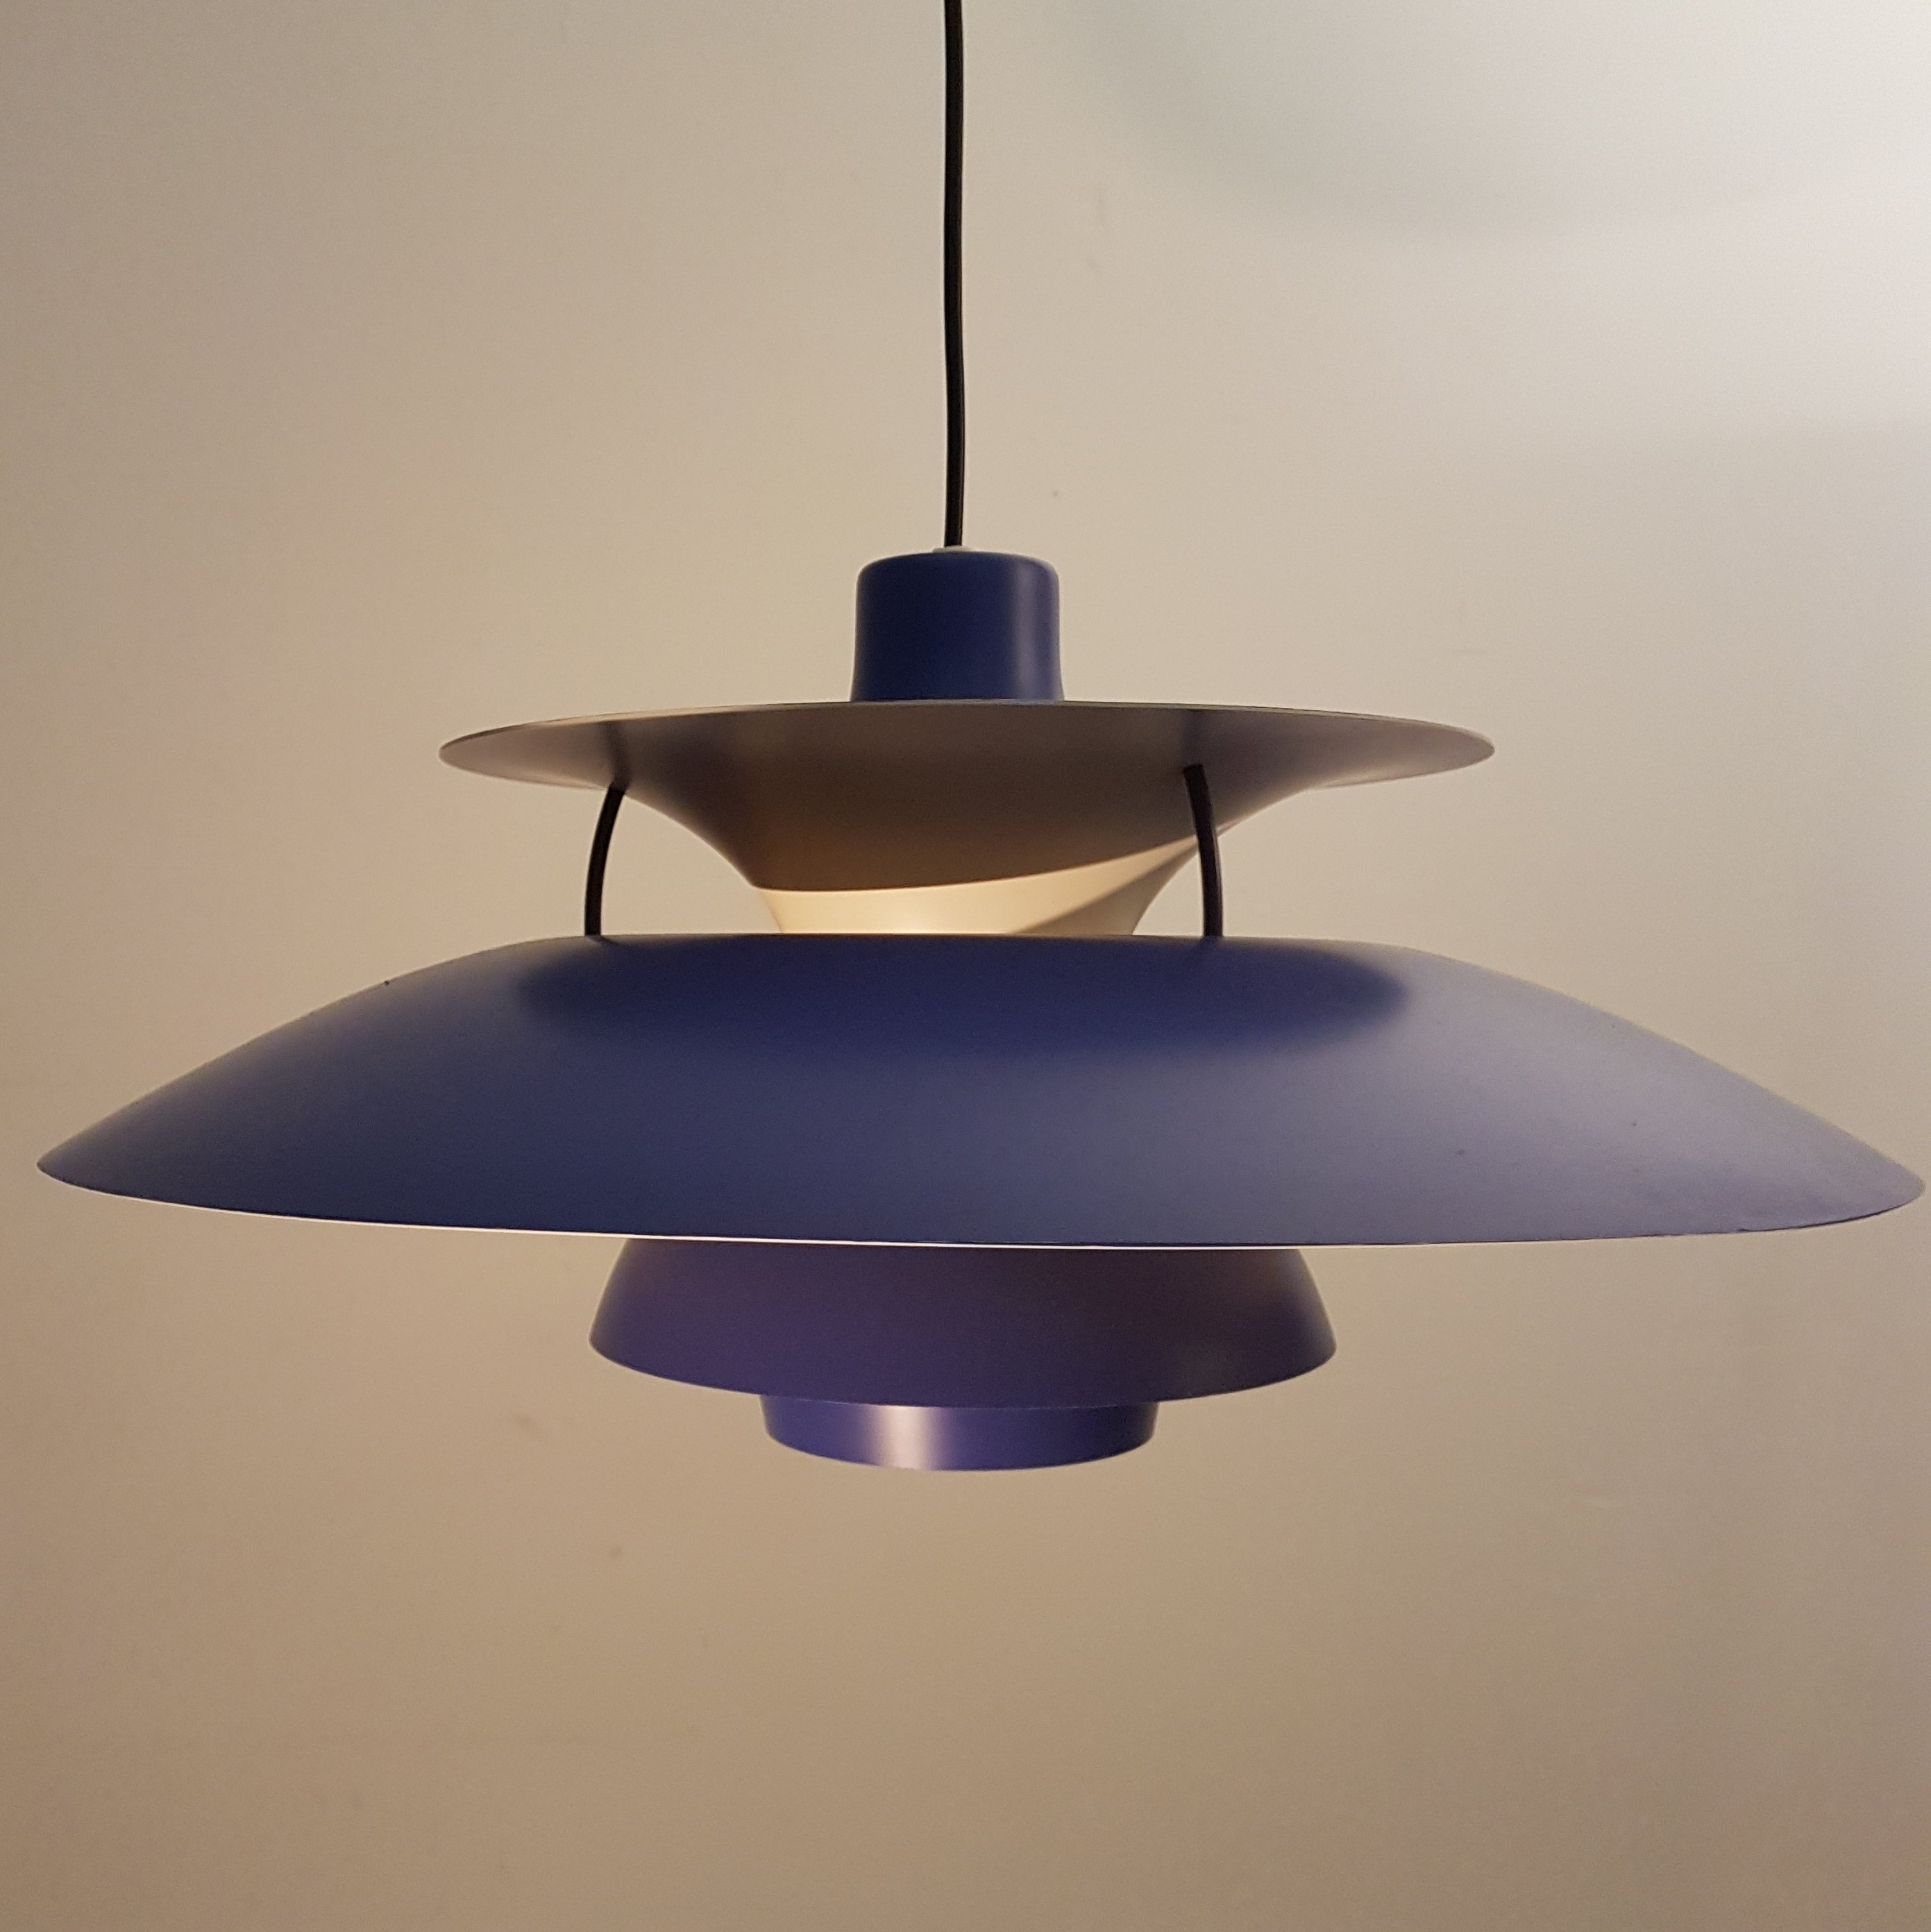 blue ph5 pendant by poul henningsen for louis poulsen. Black Bedroom Furniture Sets. Home Design Ideas